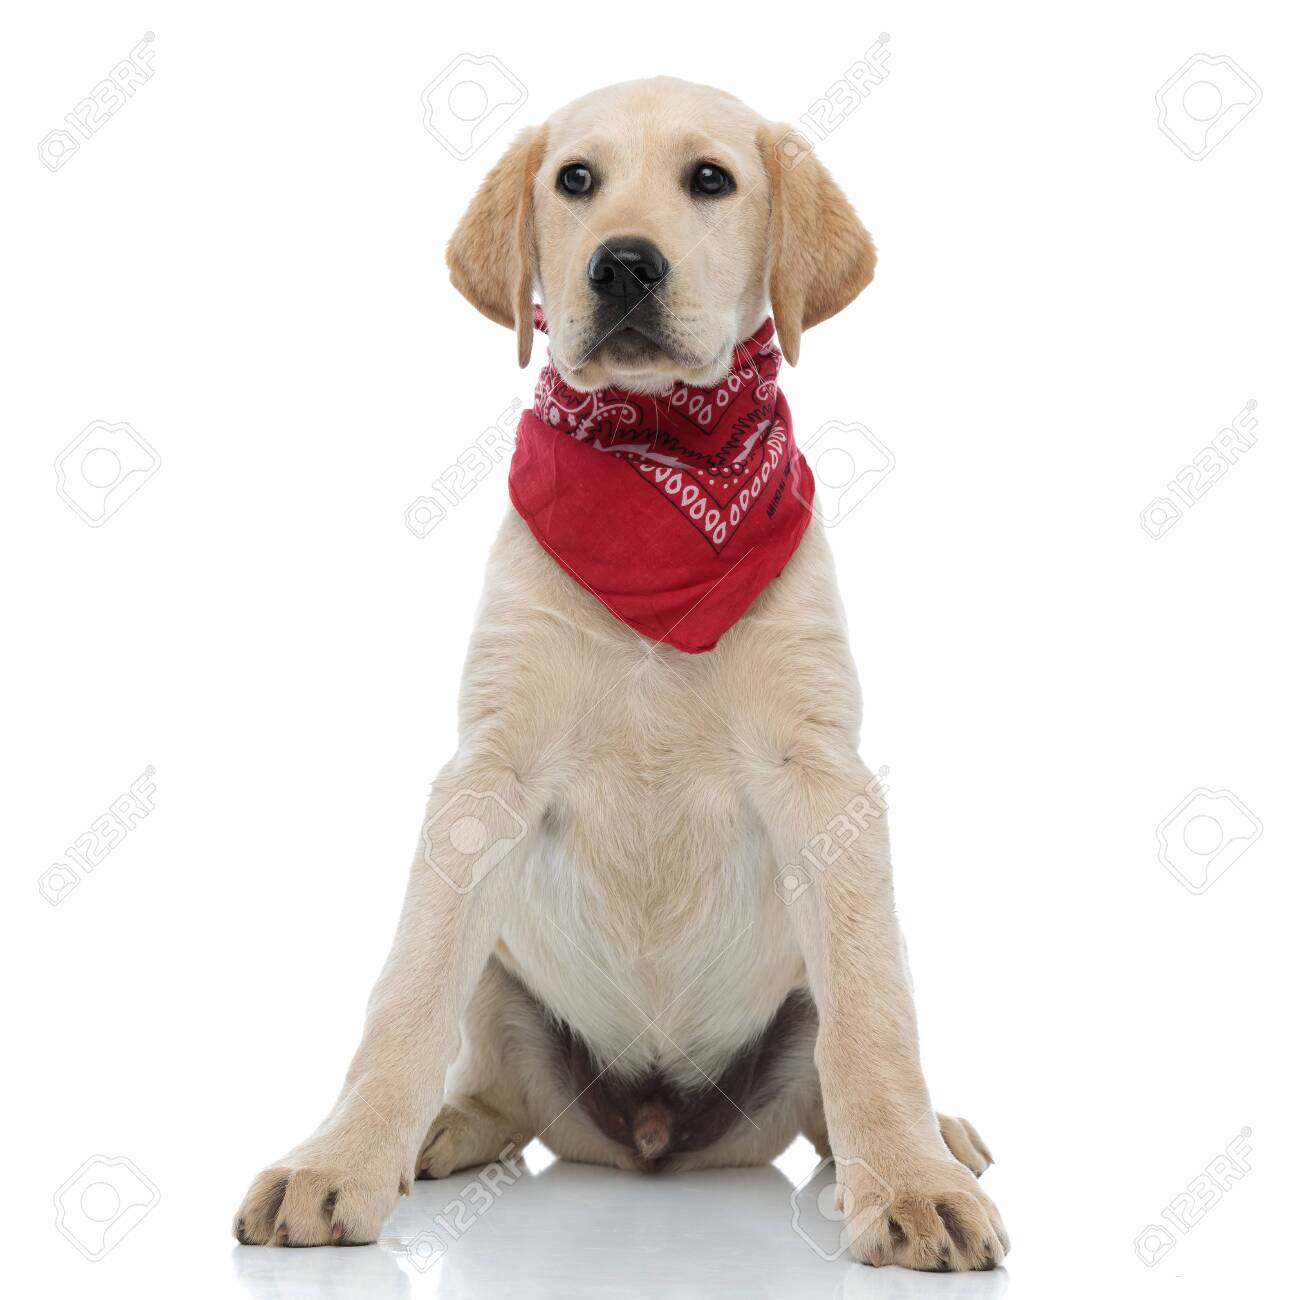 beautiful labrador retriever puppy wearing red bandana looks to side on white background - 129432120